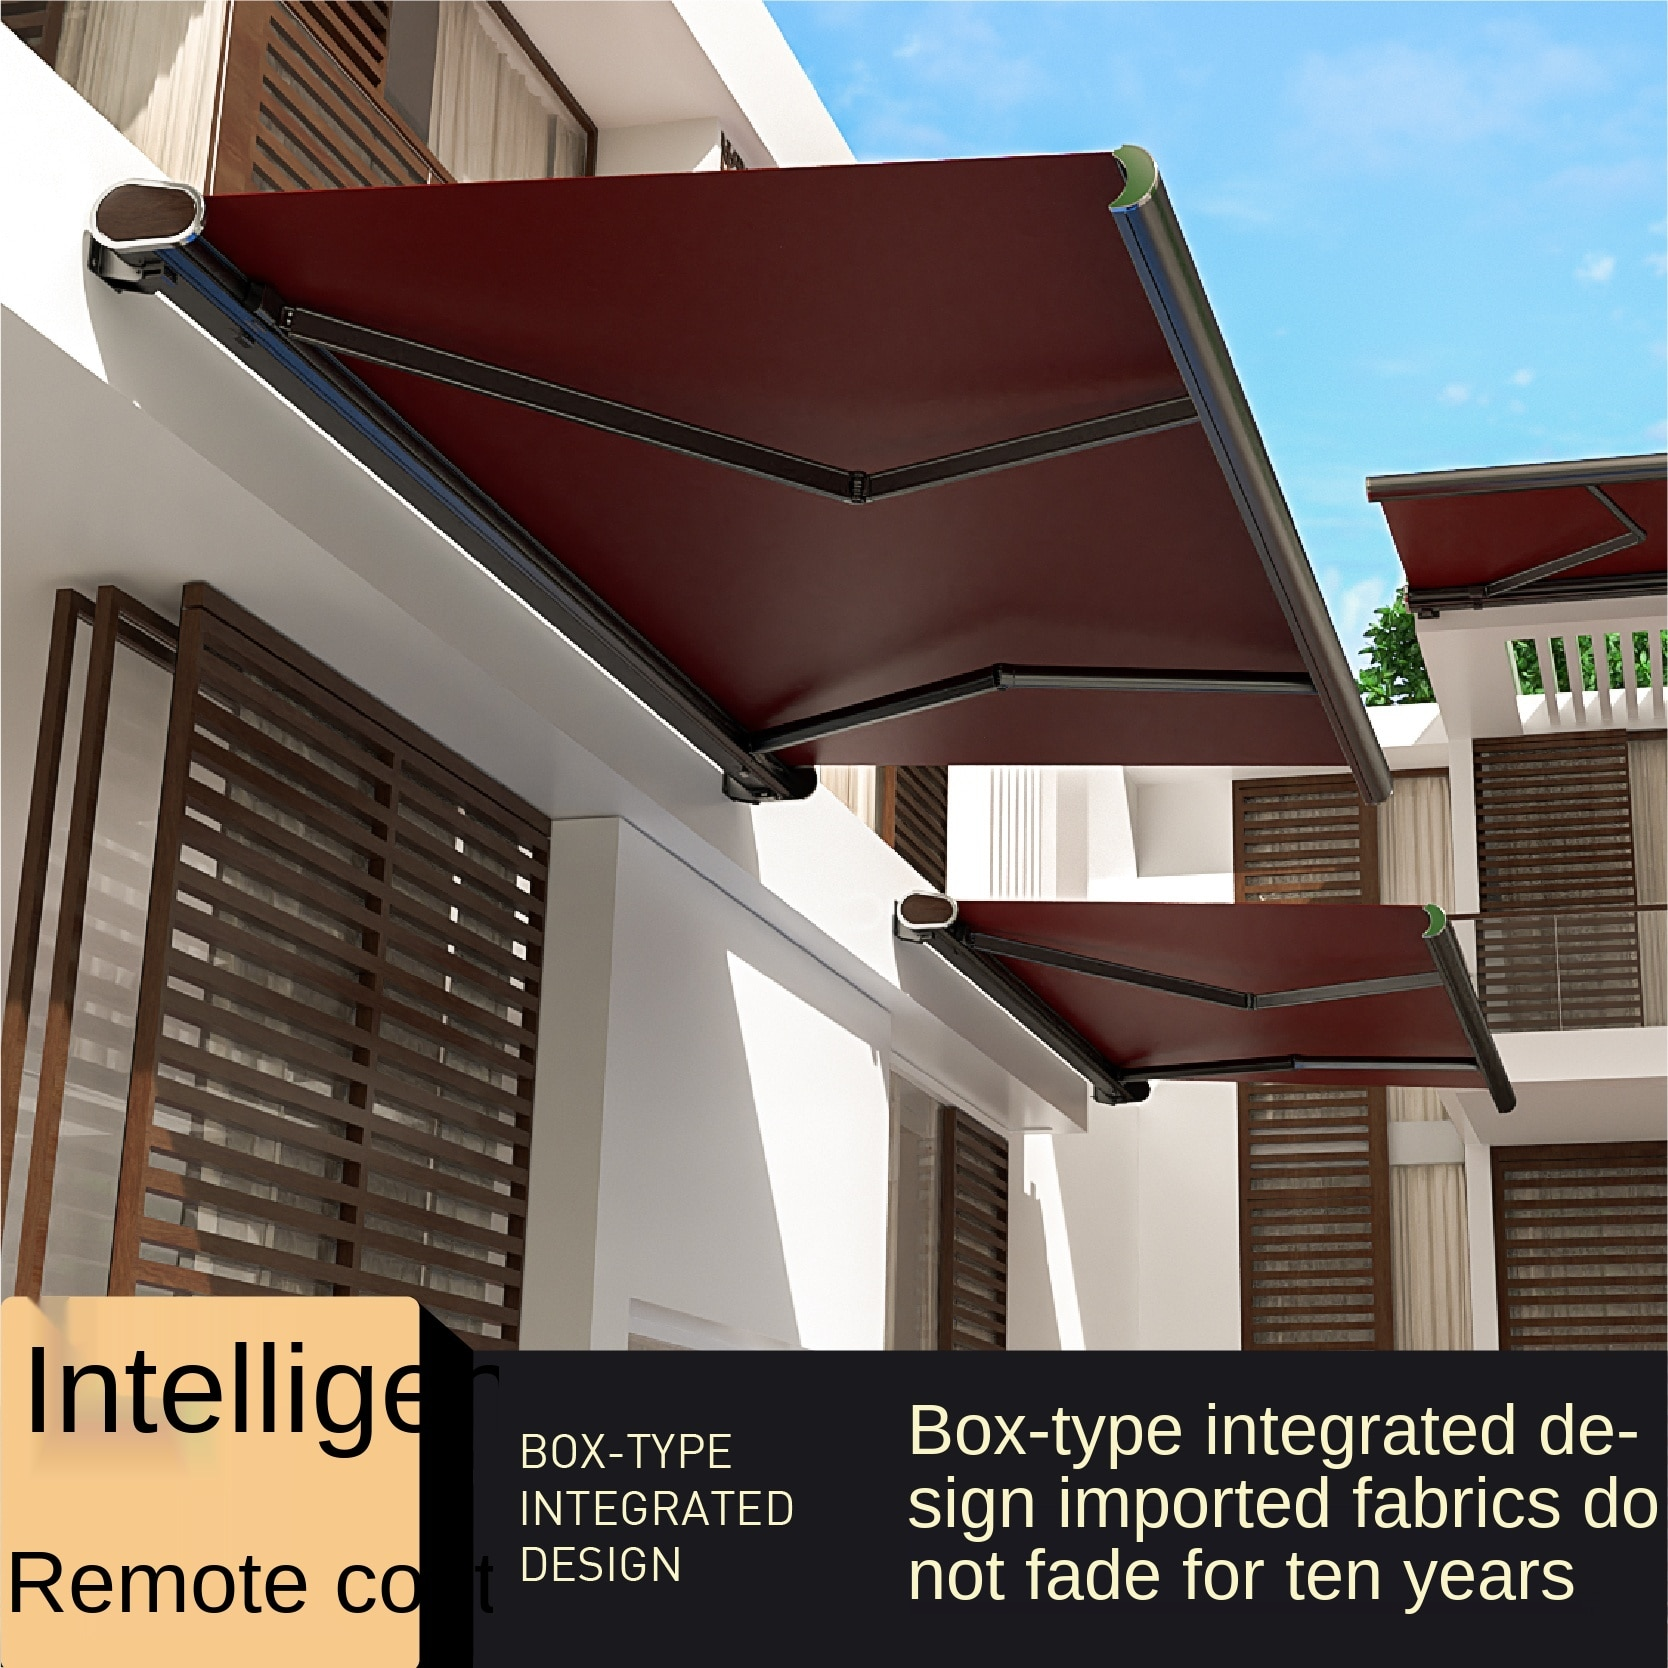 Electric Canopy Villa Outdoor Balcony Door Roof Foldable Awning Full Box Retractable Courtyard Shrink Awning